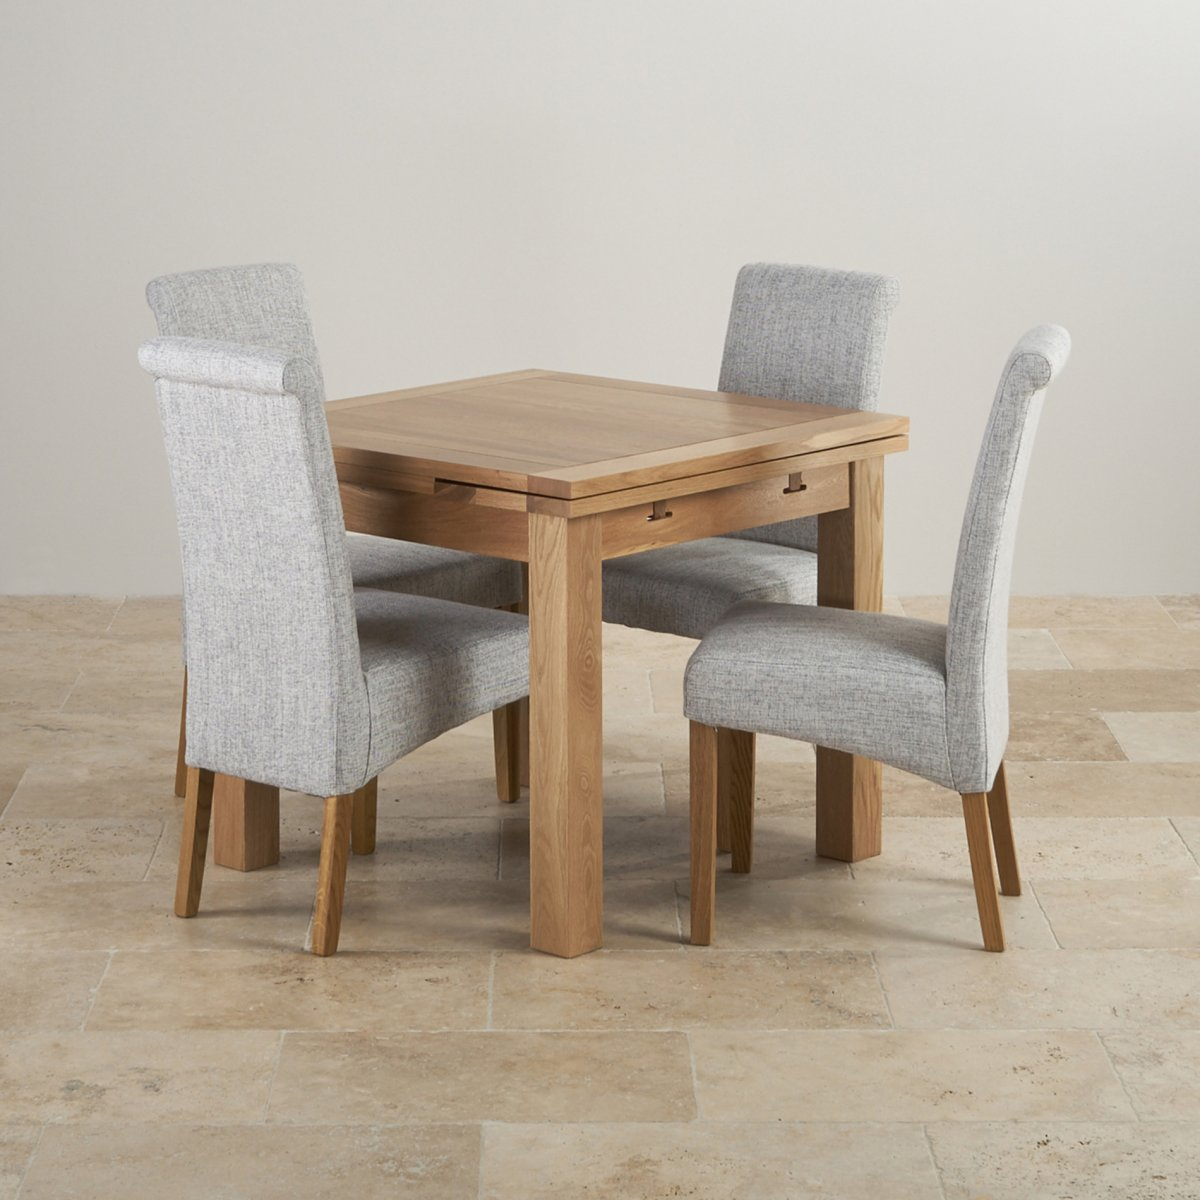 Dorset oak 3ft dining table with 4 grey fabric chairs for 4 chair dining table